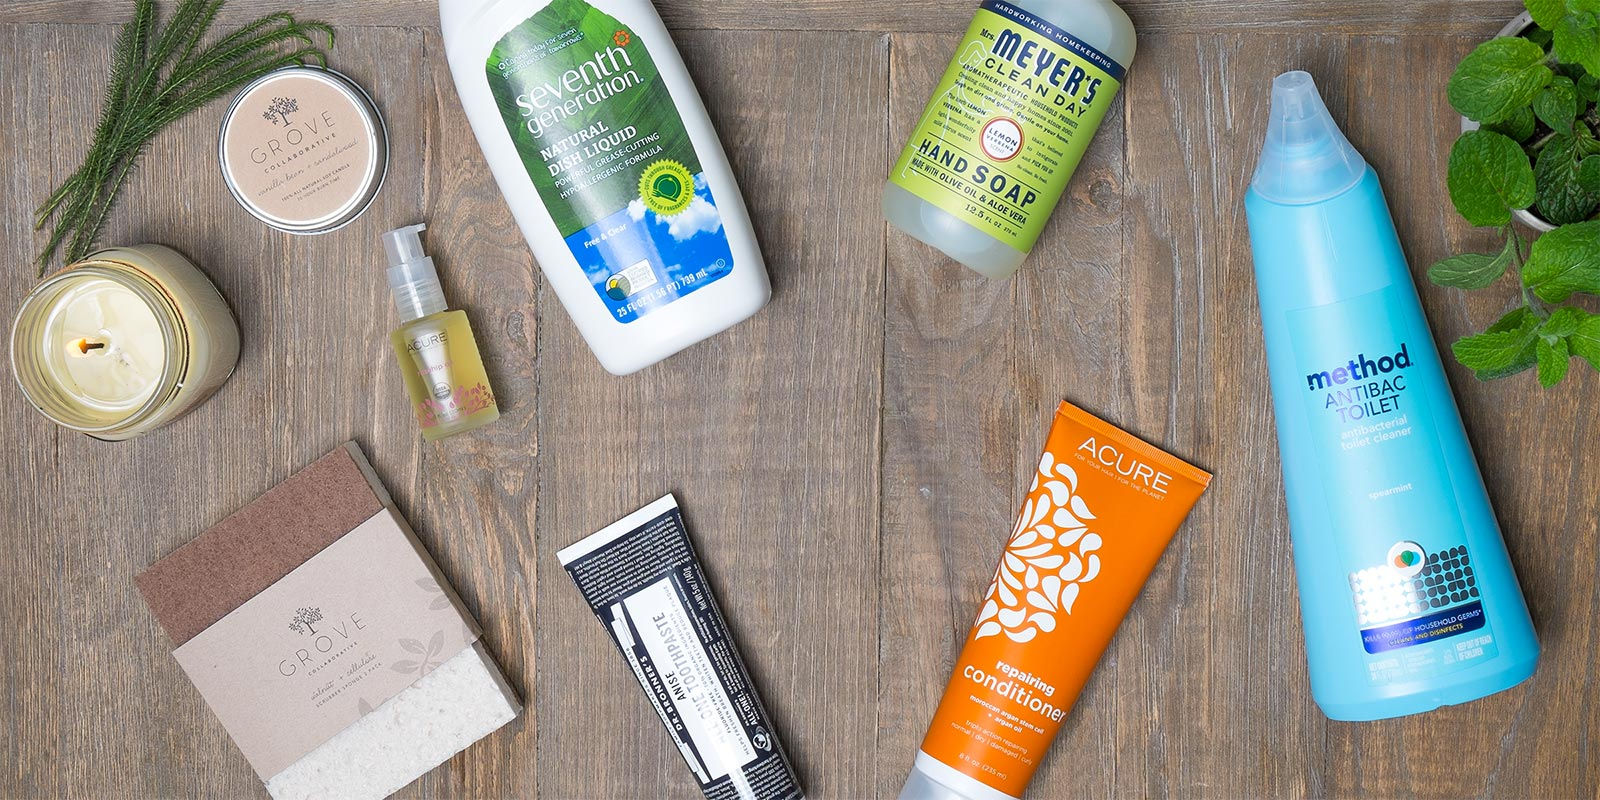 Grove collaborative subscription box cleaning supplies